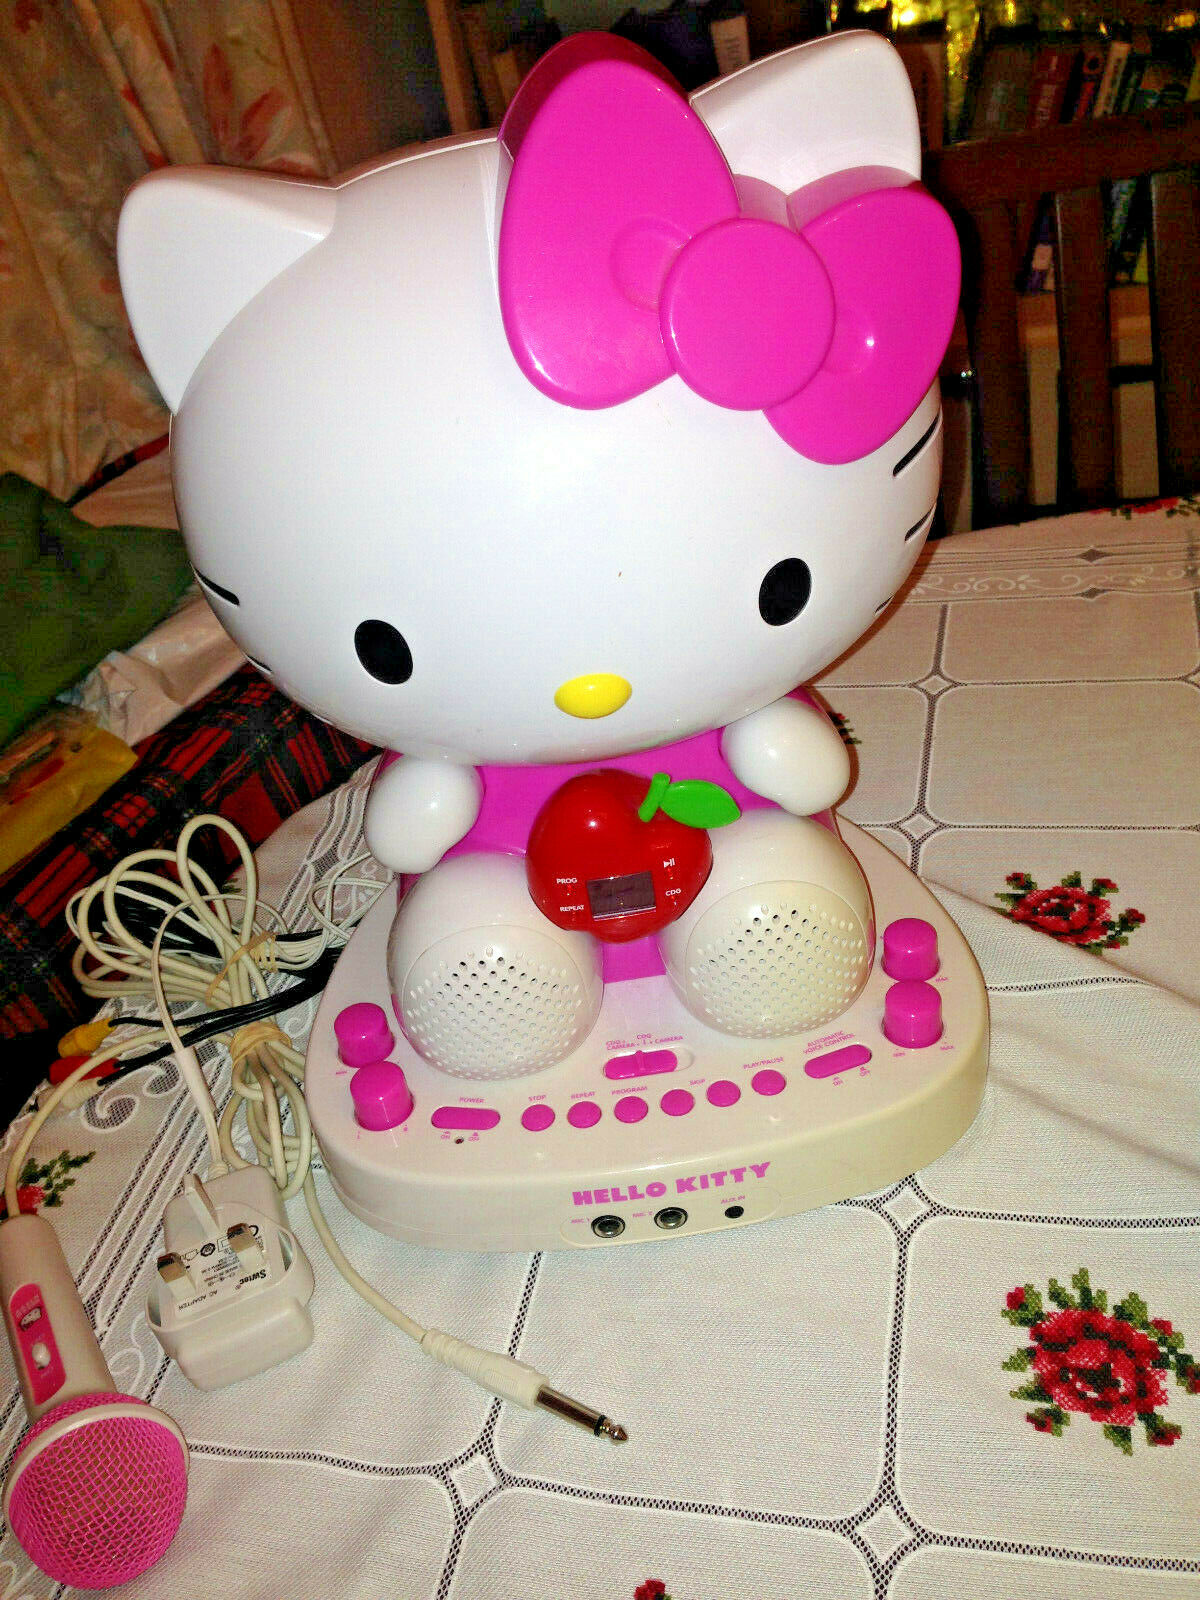 Hello Kitty KT2007F CDG Karaoke System with Built-In Farbe Video Camera